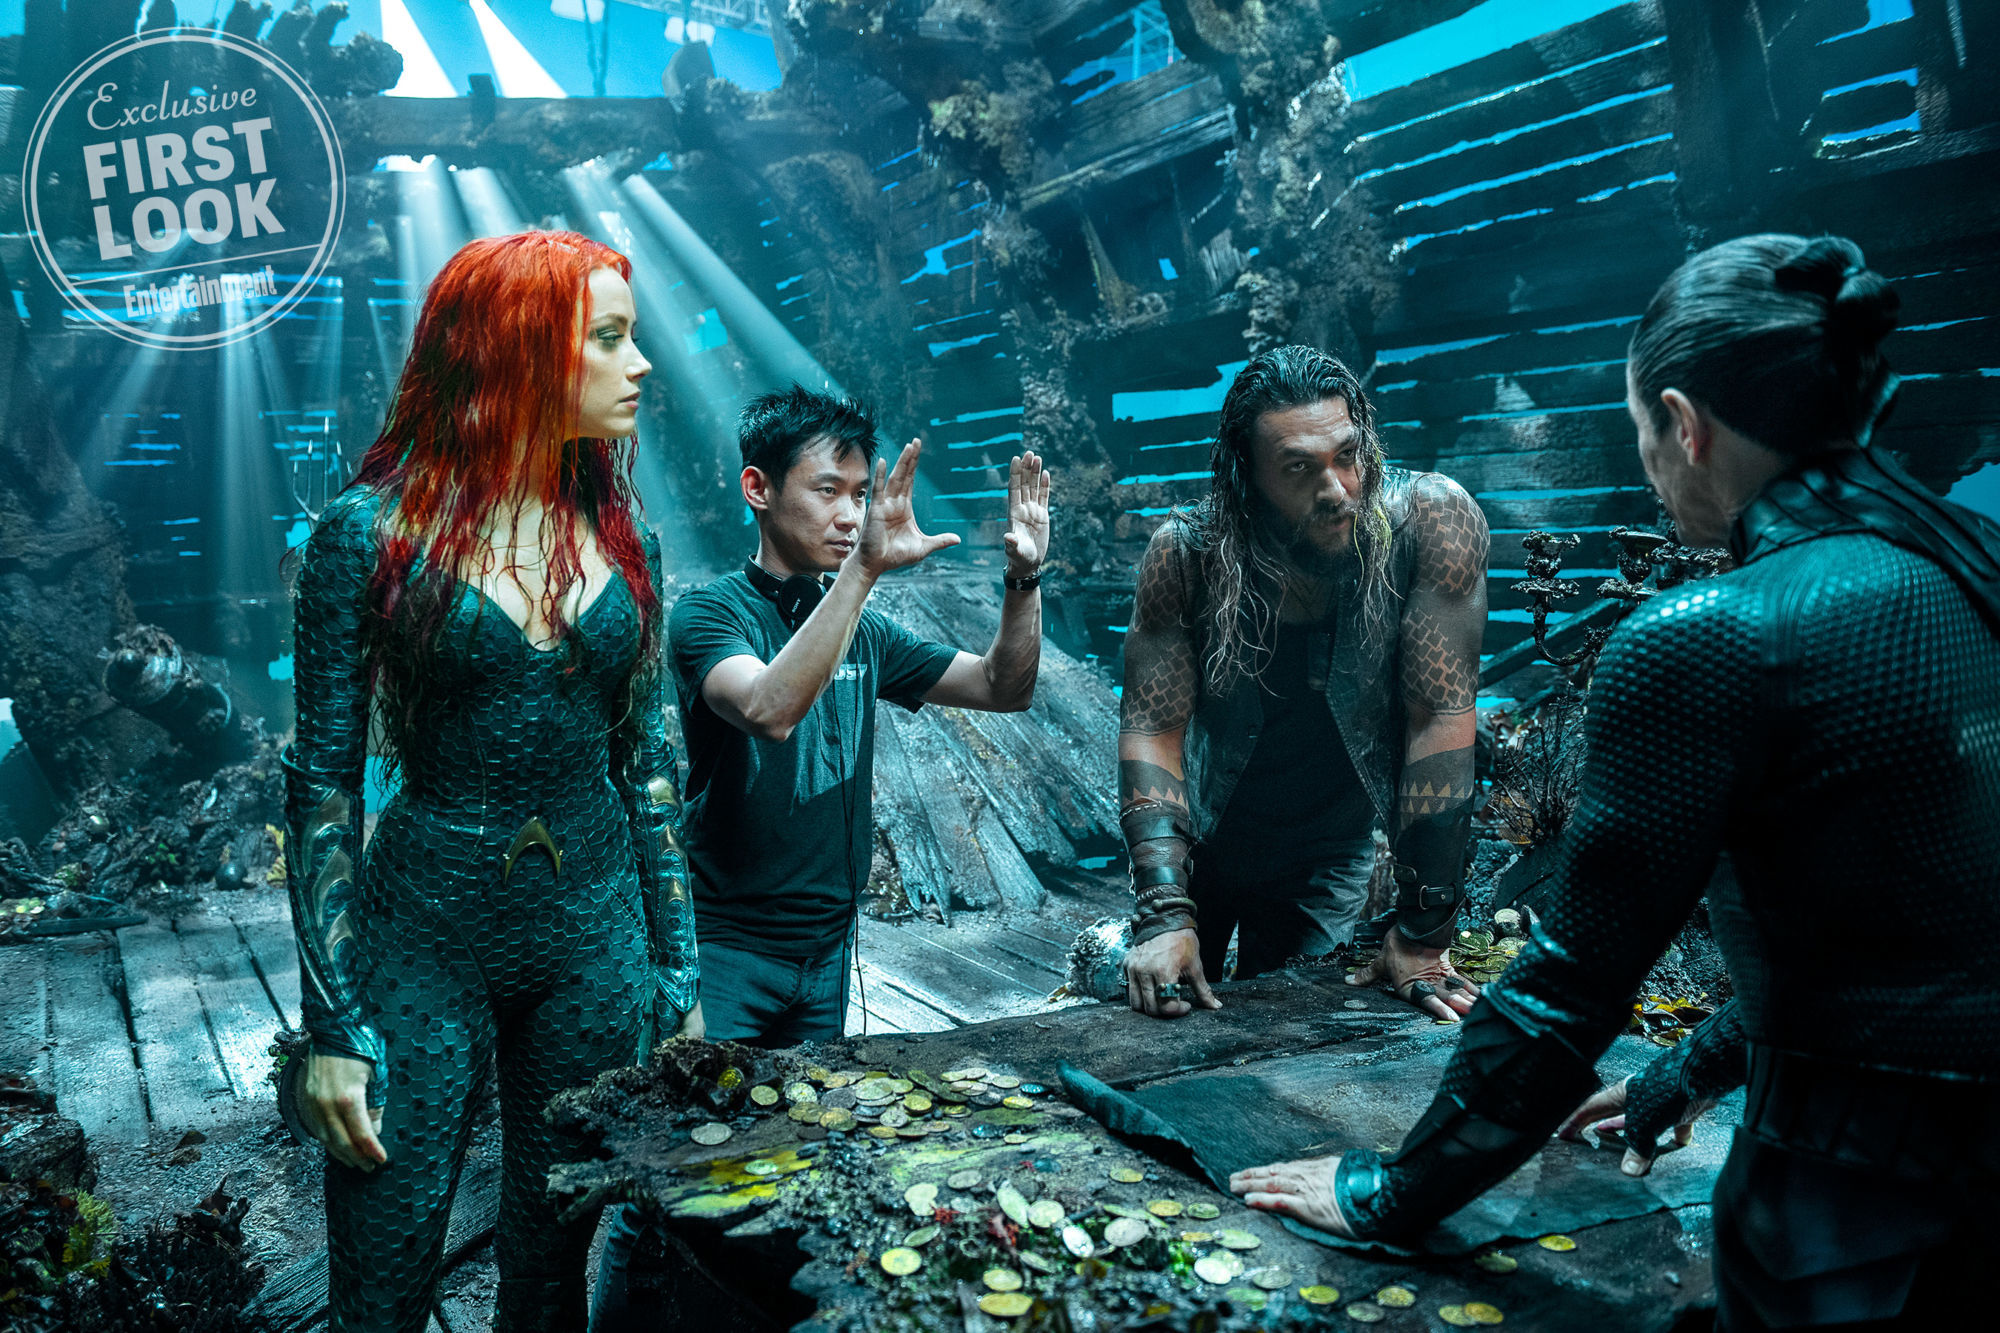 Director James Wan Talks About The Tone Of Aquaman Sound Books Batman V Superman Now We Have Right Around Corner And Collider Asked How His Movie Is Different From